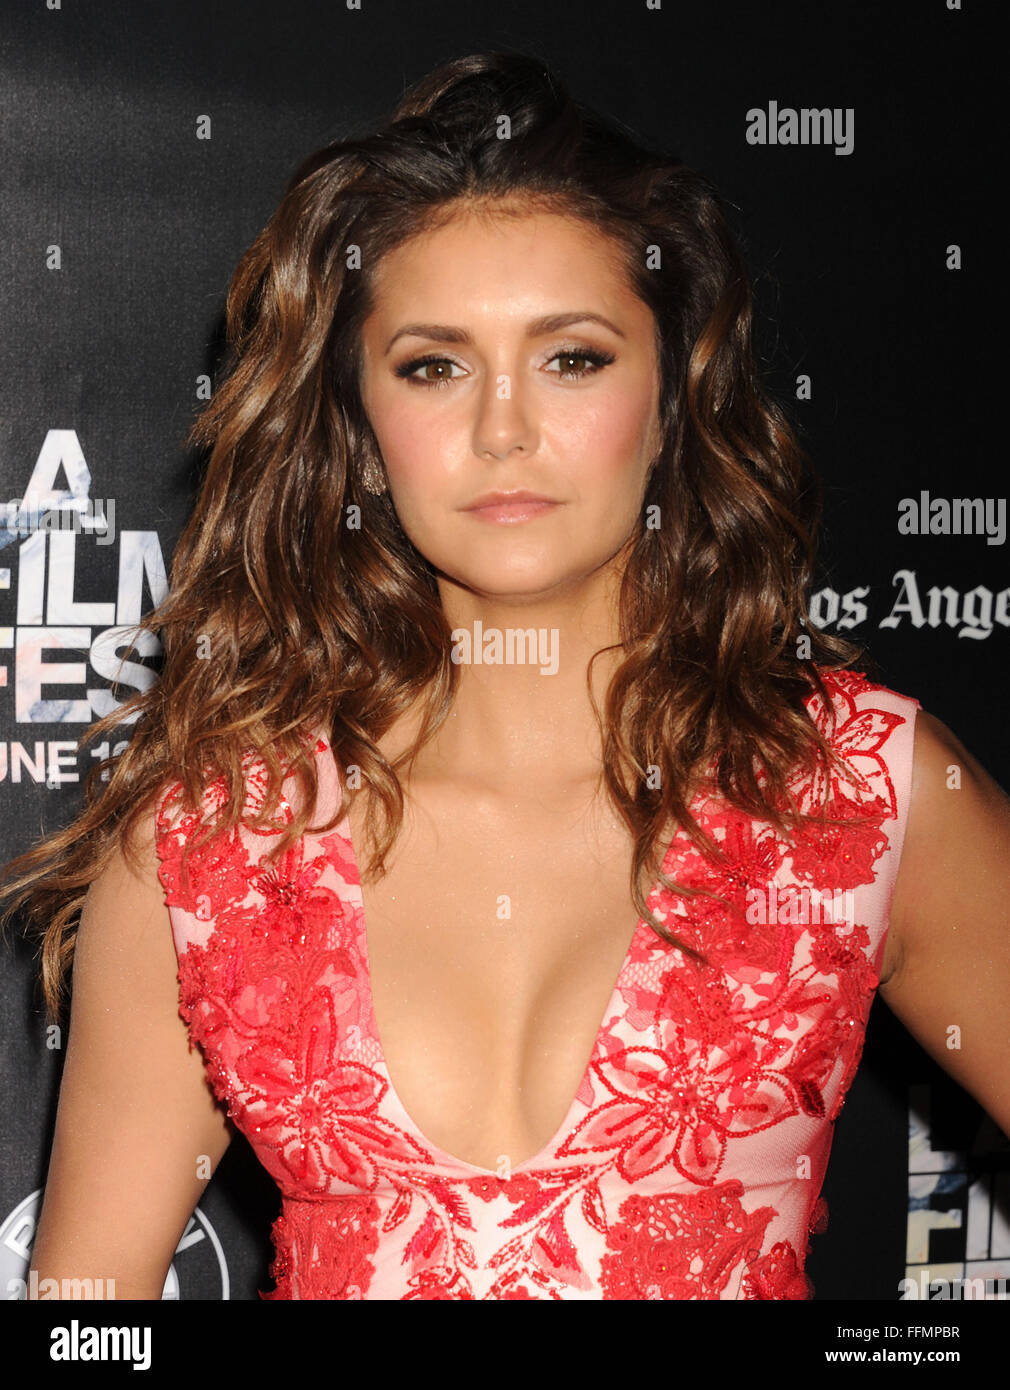 Actress Nina Dobrev attends 'The Final Girls' screening during the 2015 Los Angeles Film Festival at Regal - Stock Image